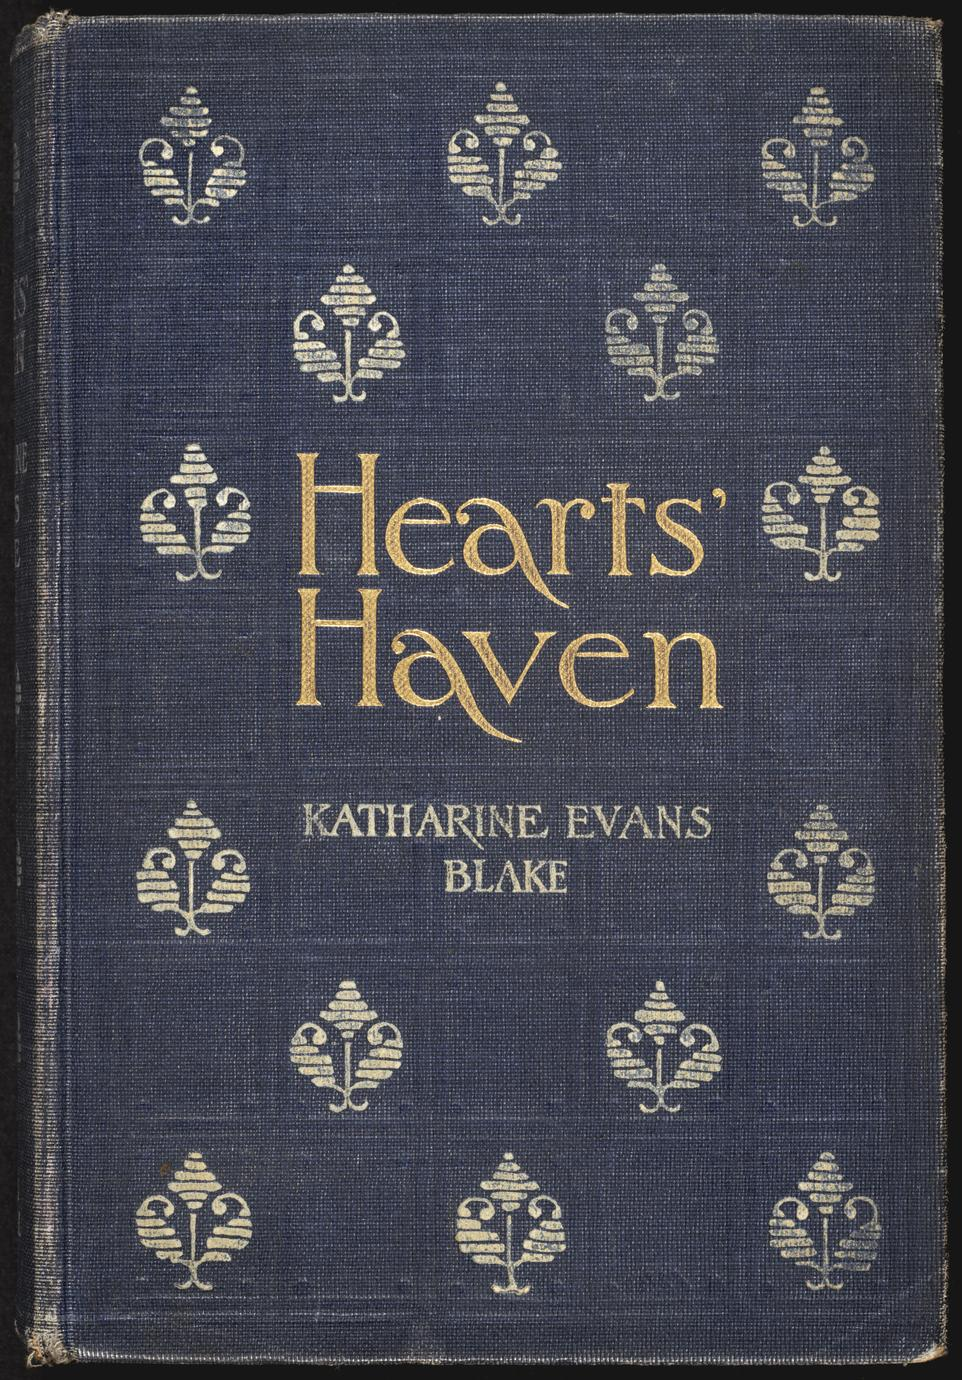 Hearts' haven (1 of 2)